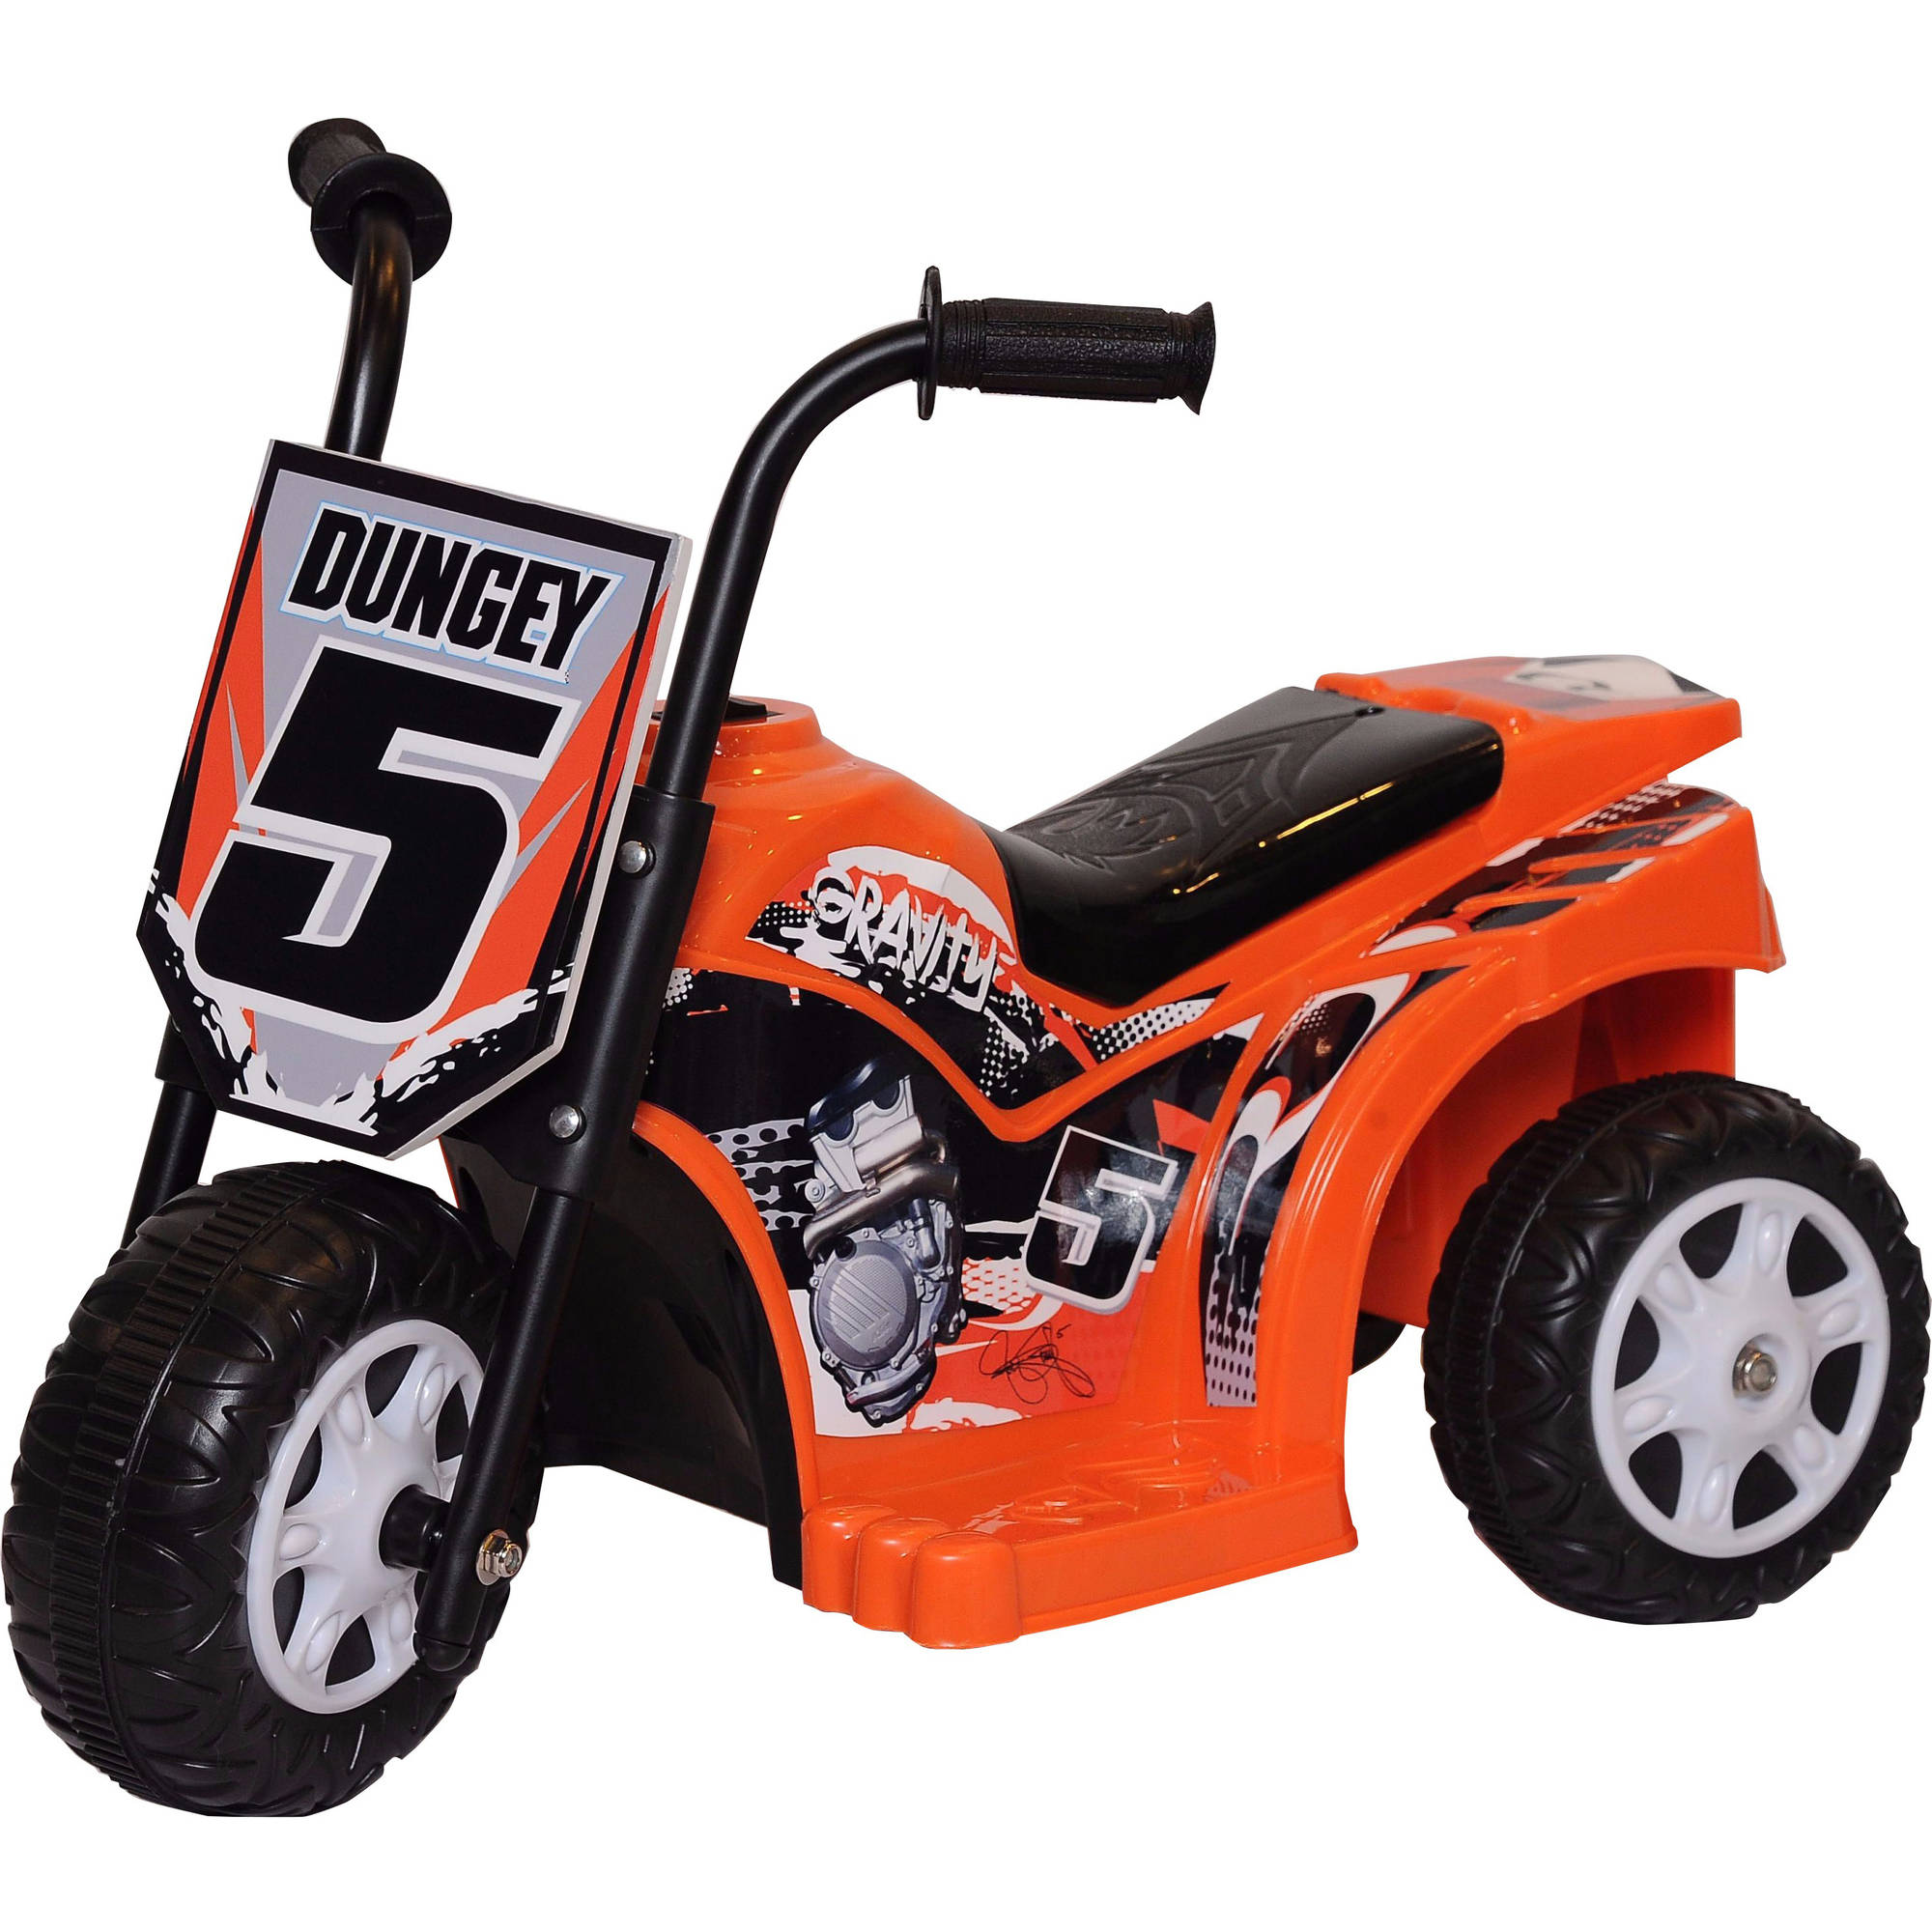 6V Best Ride On Ryan Dungey Licensed Battery Powered Mini Moto Bike Wonderlanes